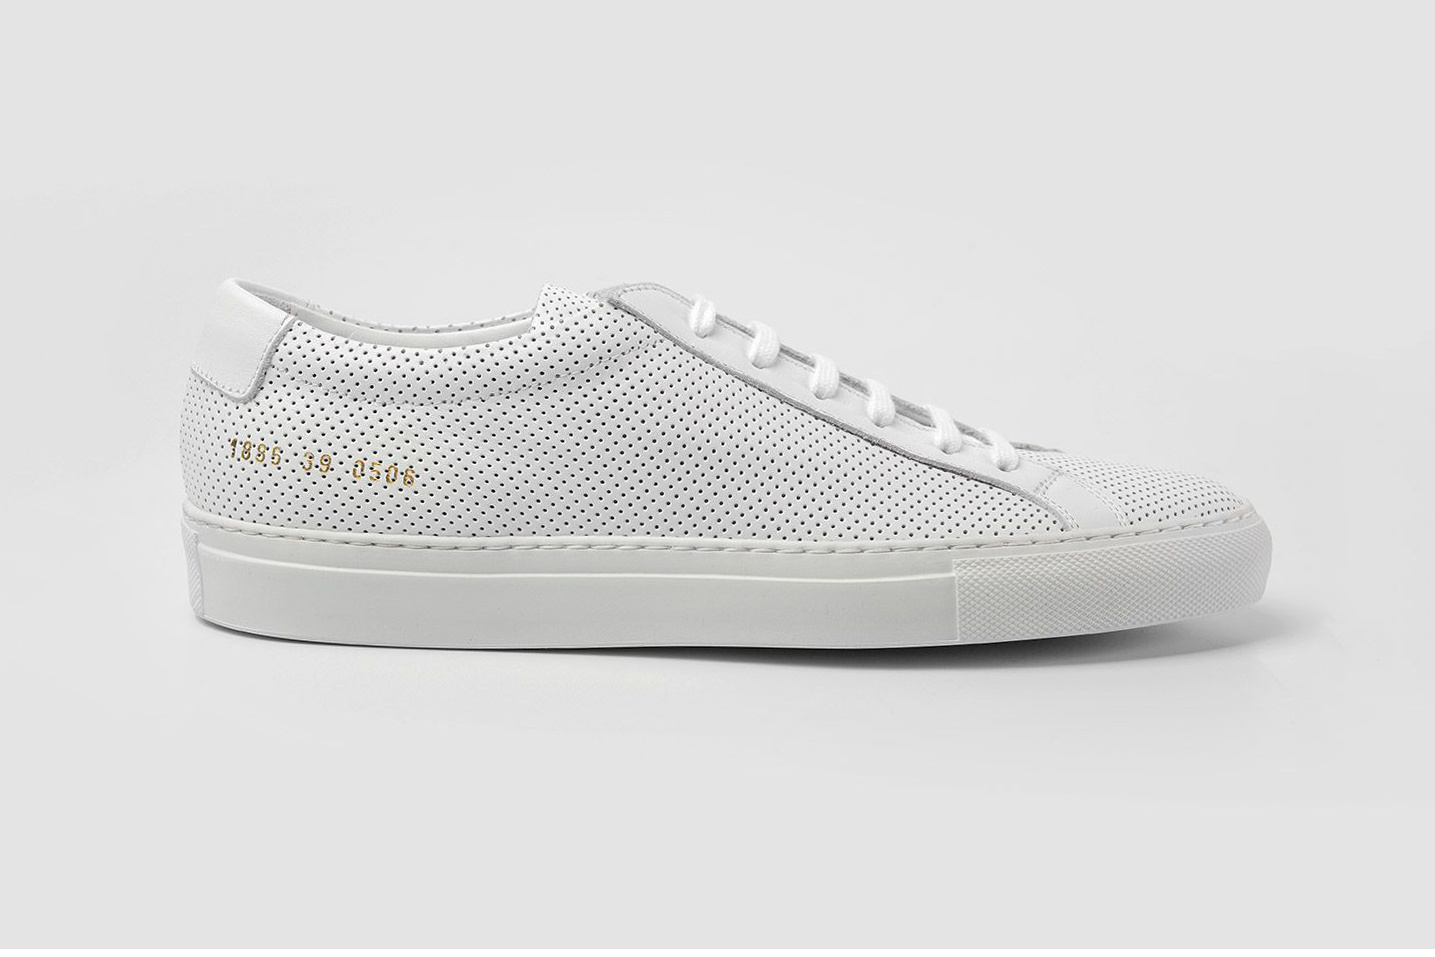 common-projects-achilles-low-perforated-white-sneaker-1